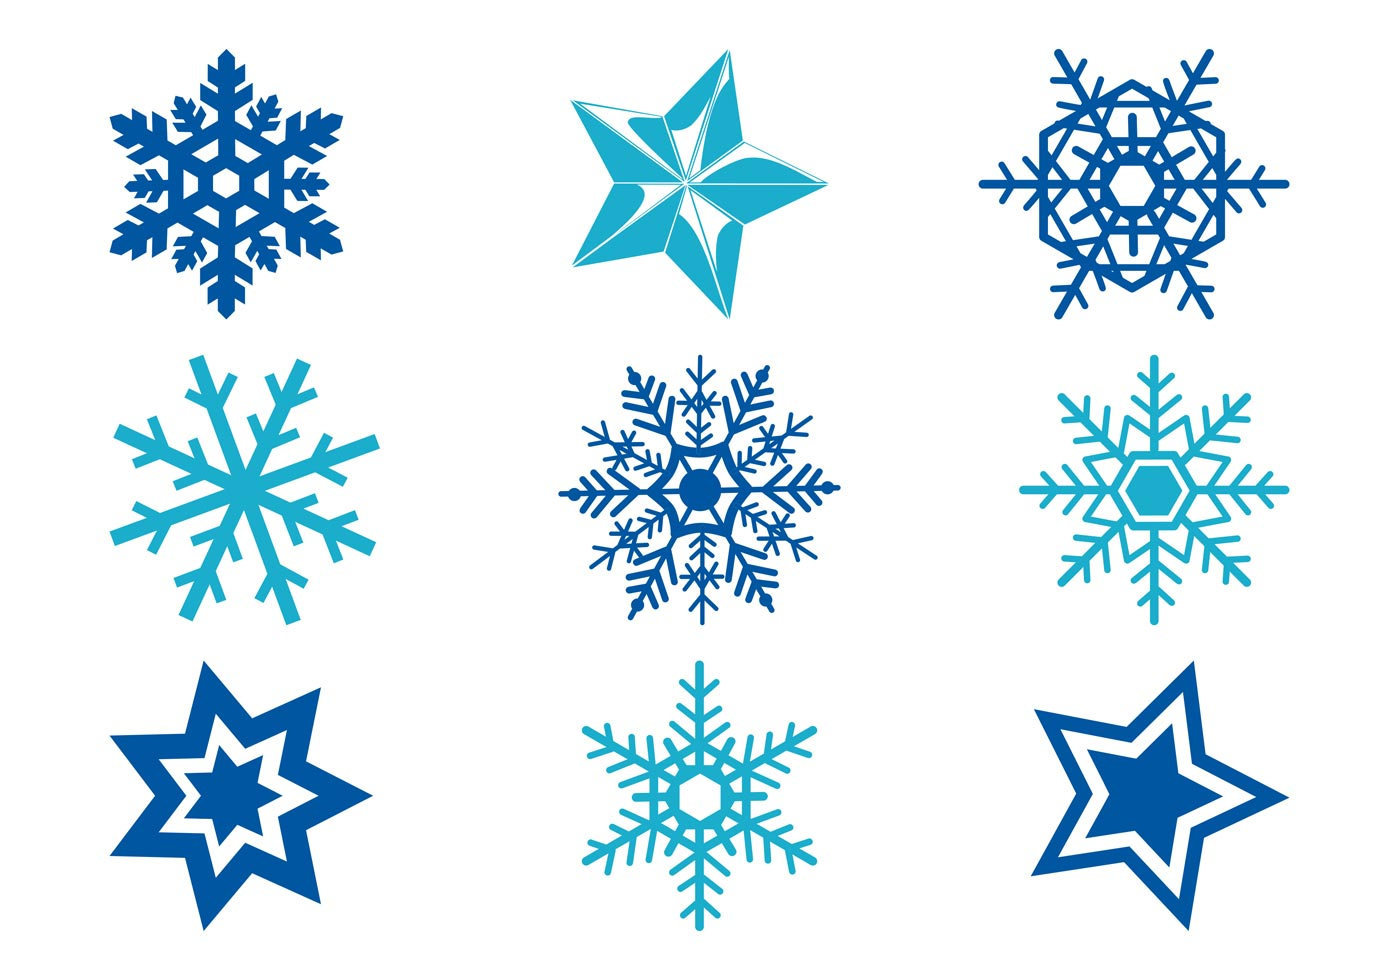 Stars And Snowflakes - Download Free Vector Art, Stock ...